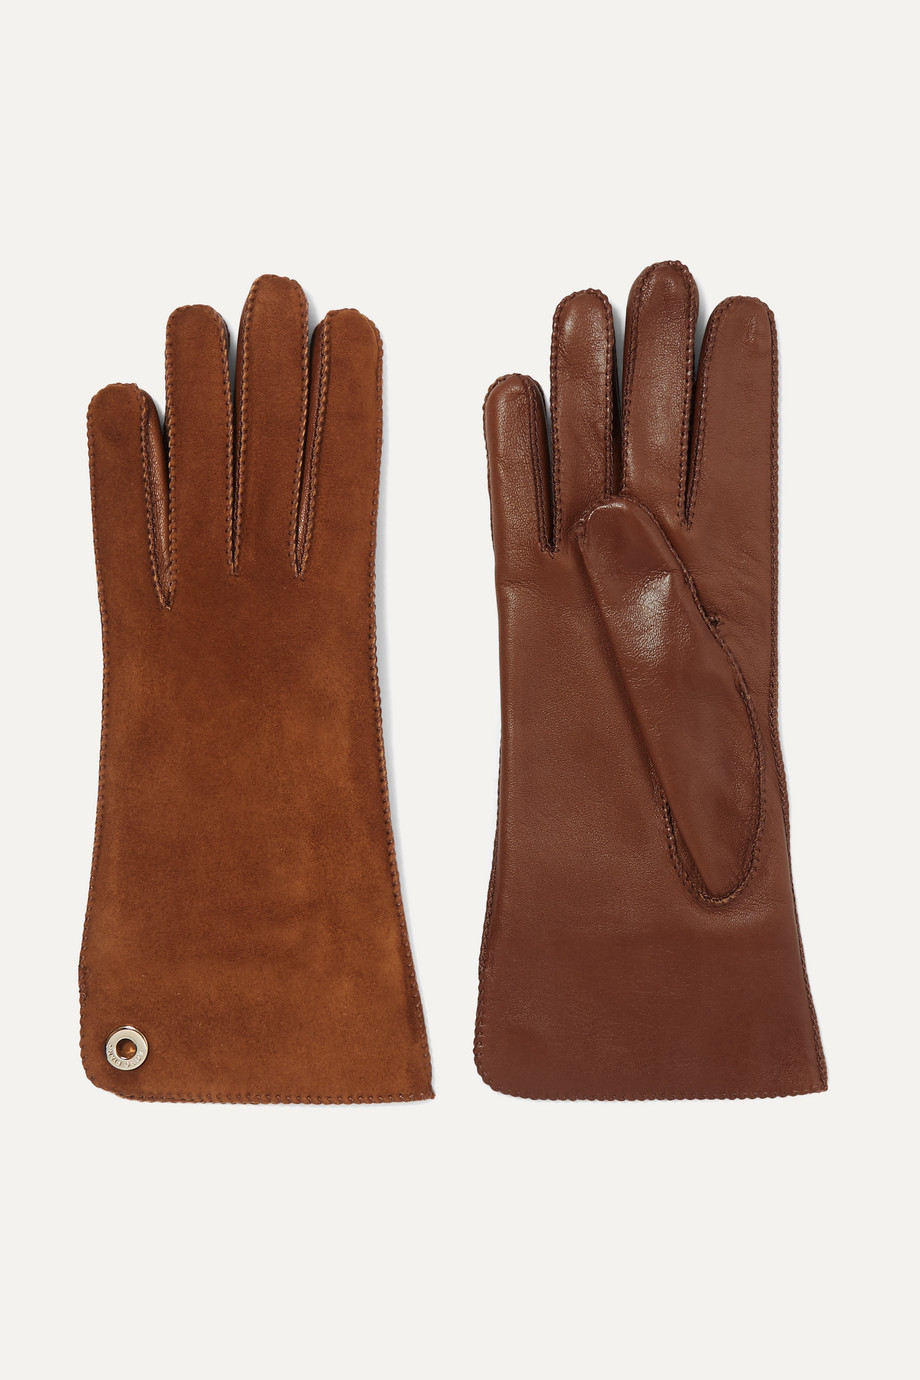 Loro Piana Leather and suede gloves